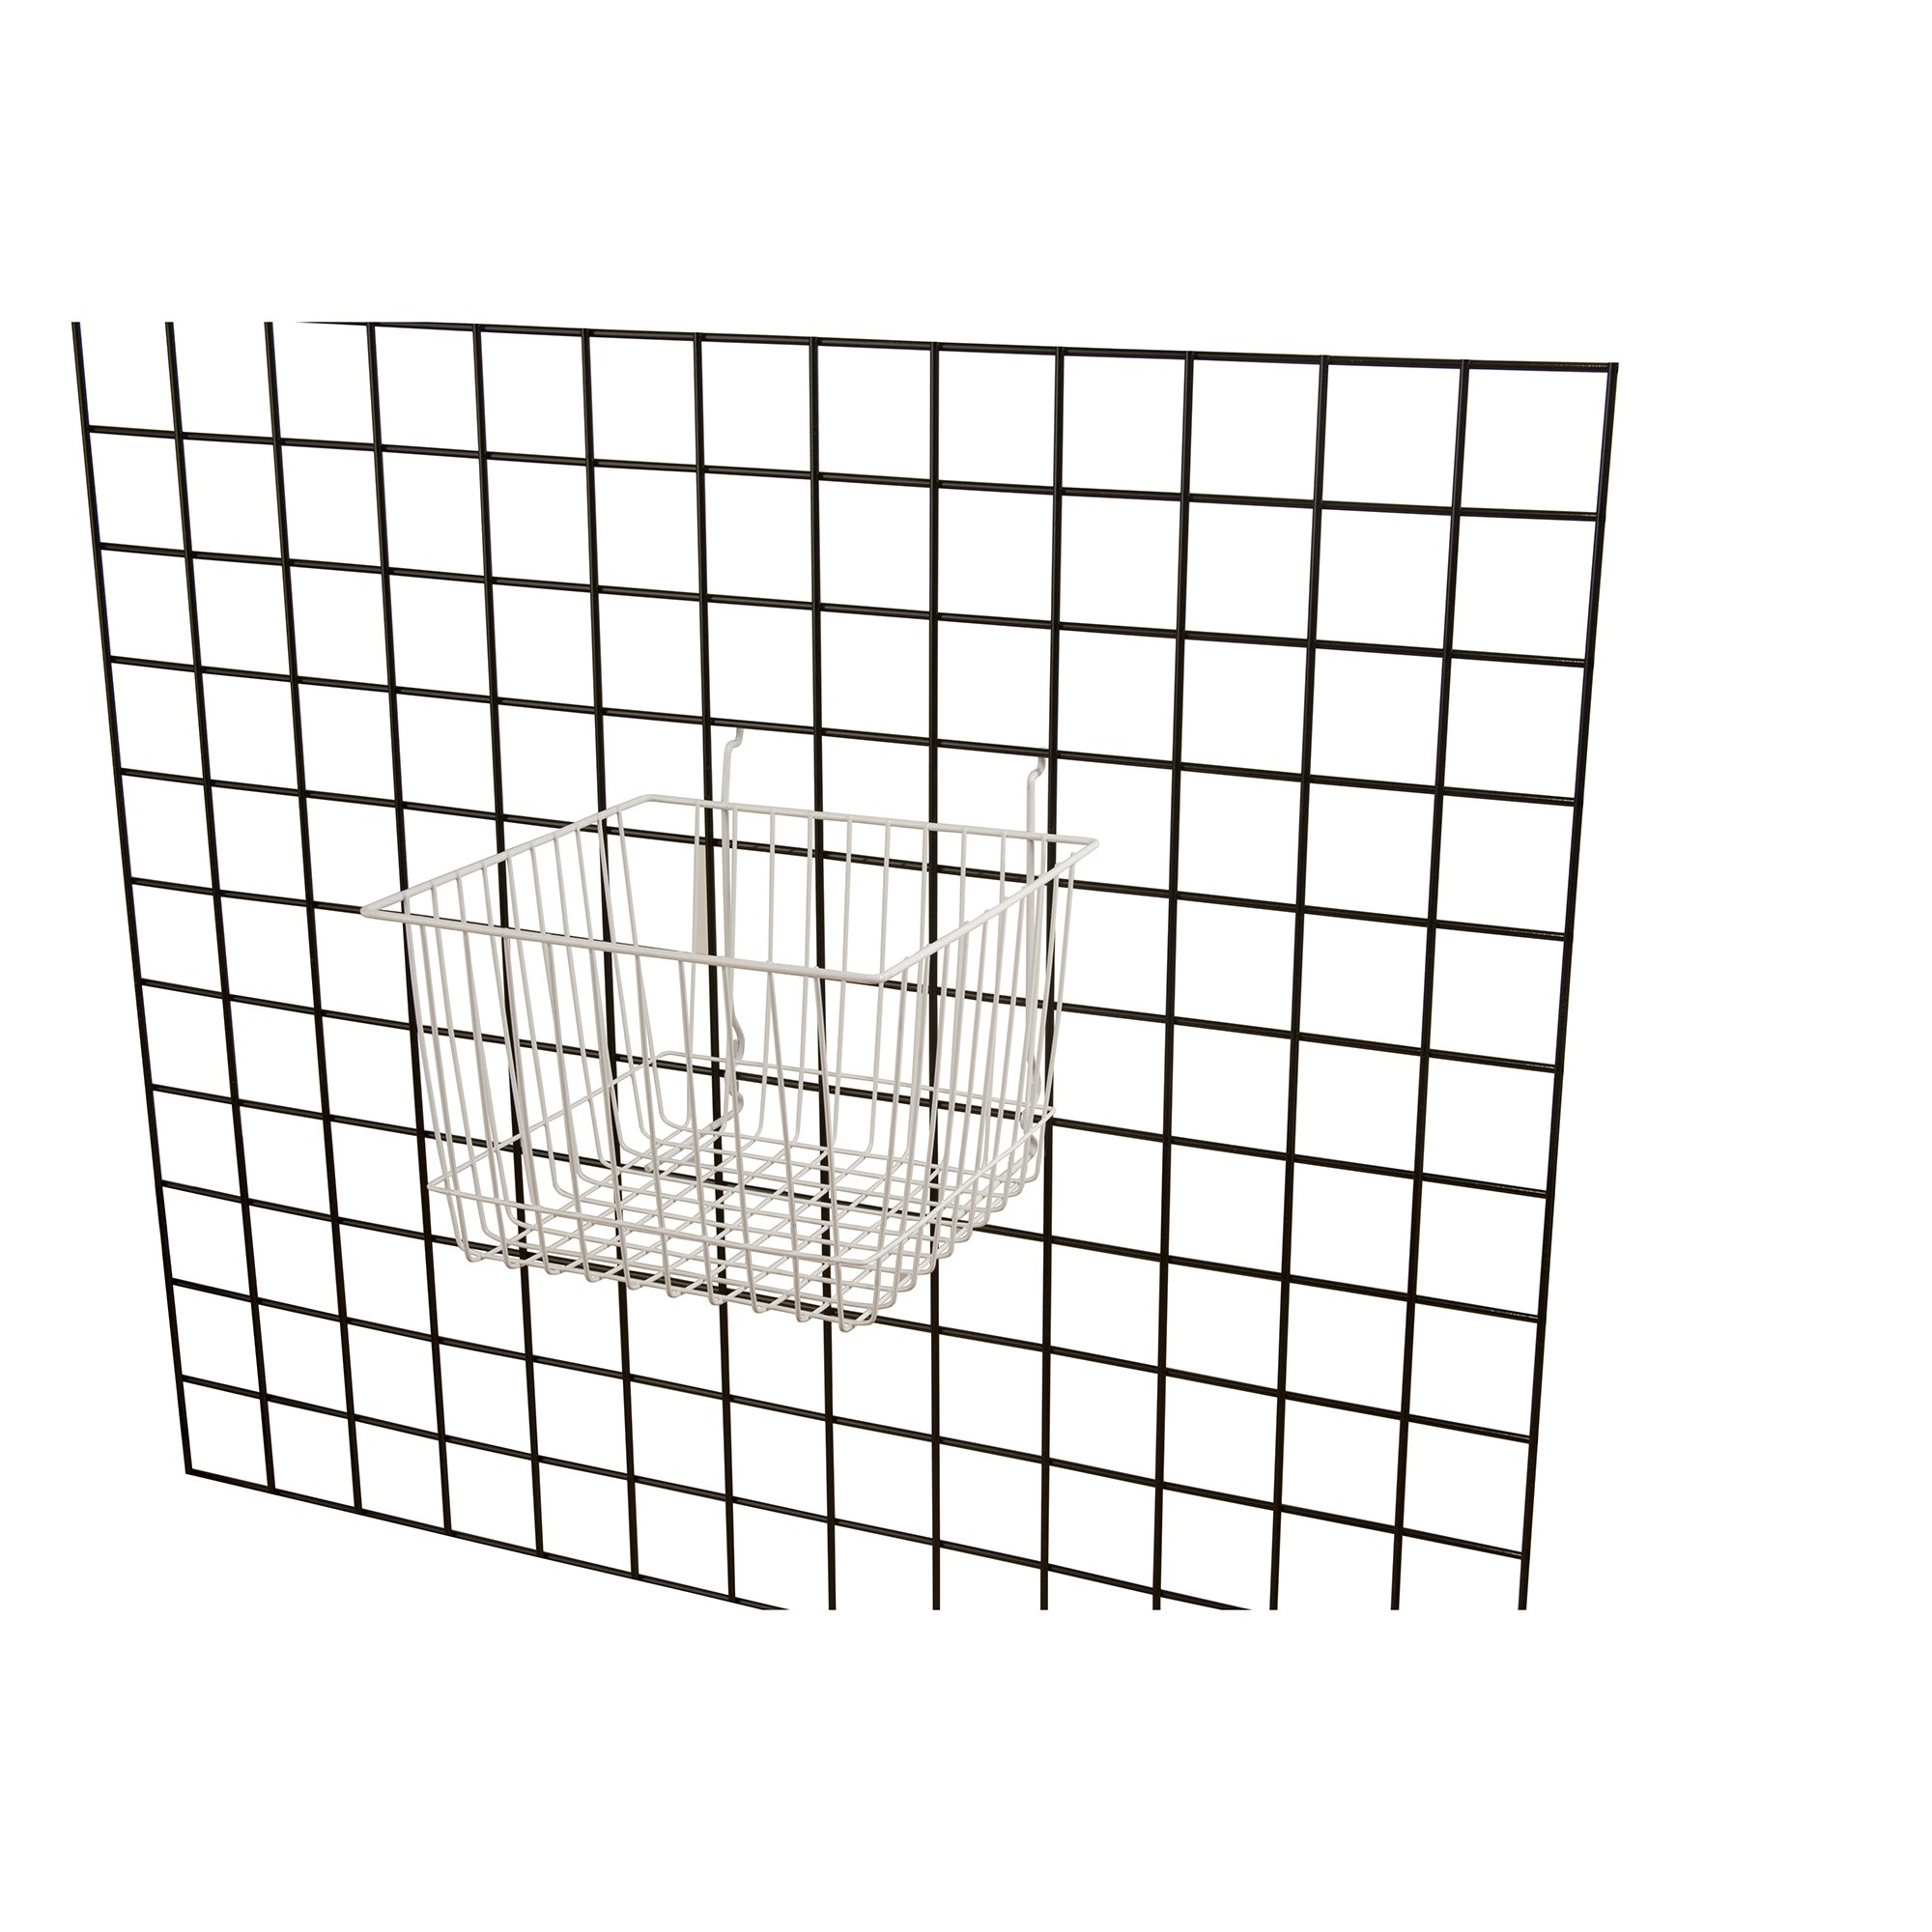 Wire Basket for Slatwall, Gridwall or Pegboard -Box of 6 - 12''W x 12''D x 8''H Deep Basket by Unknown (Image #1)